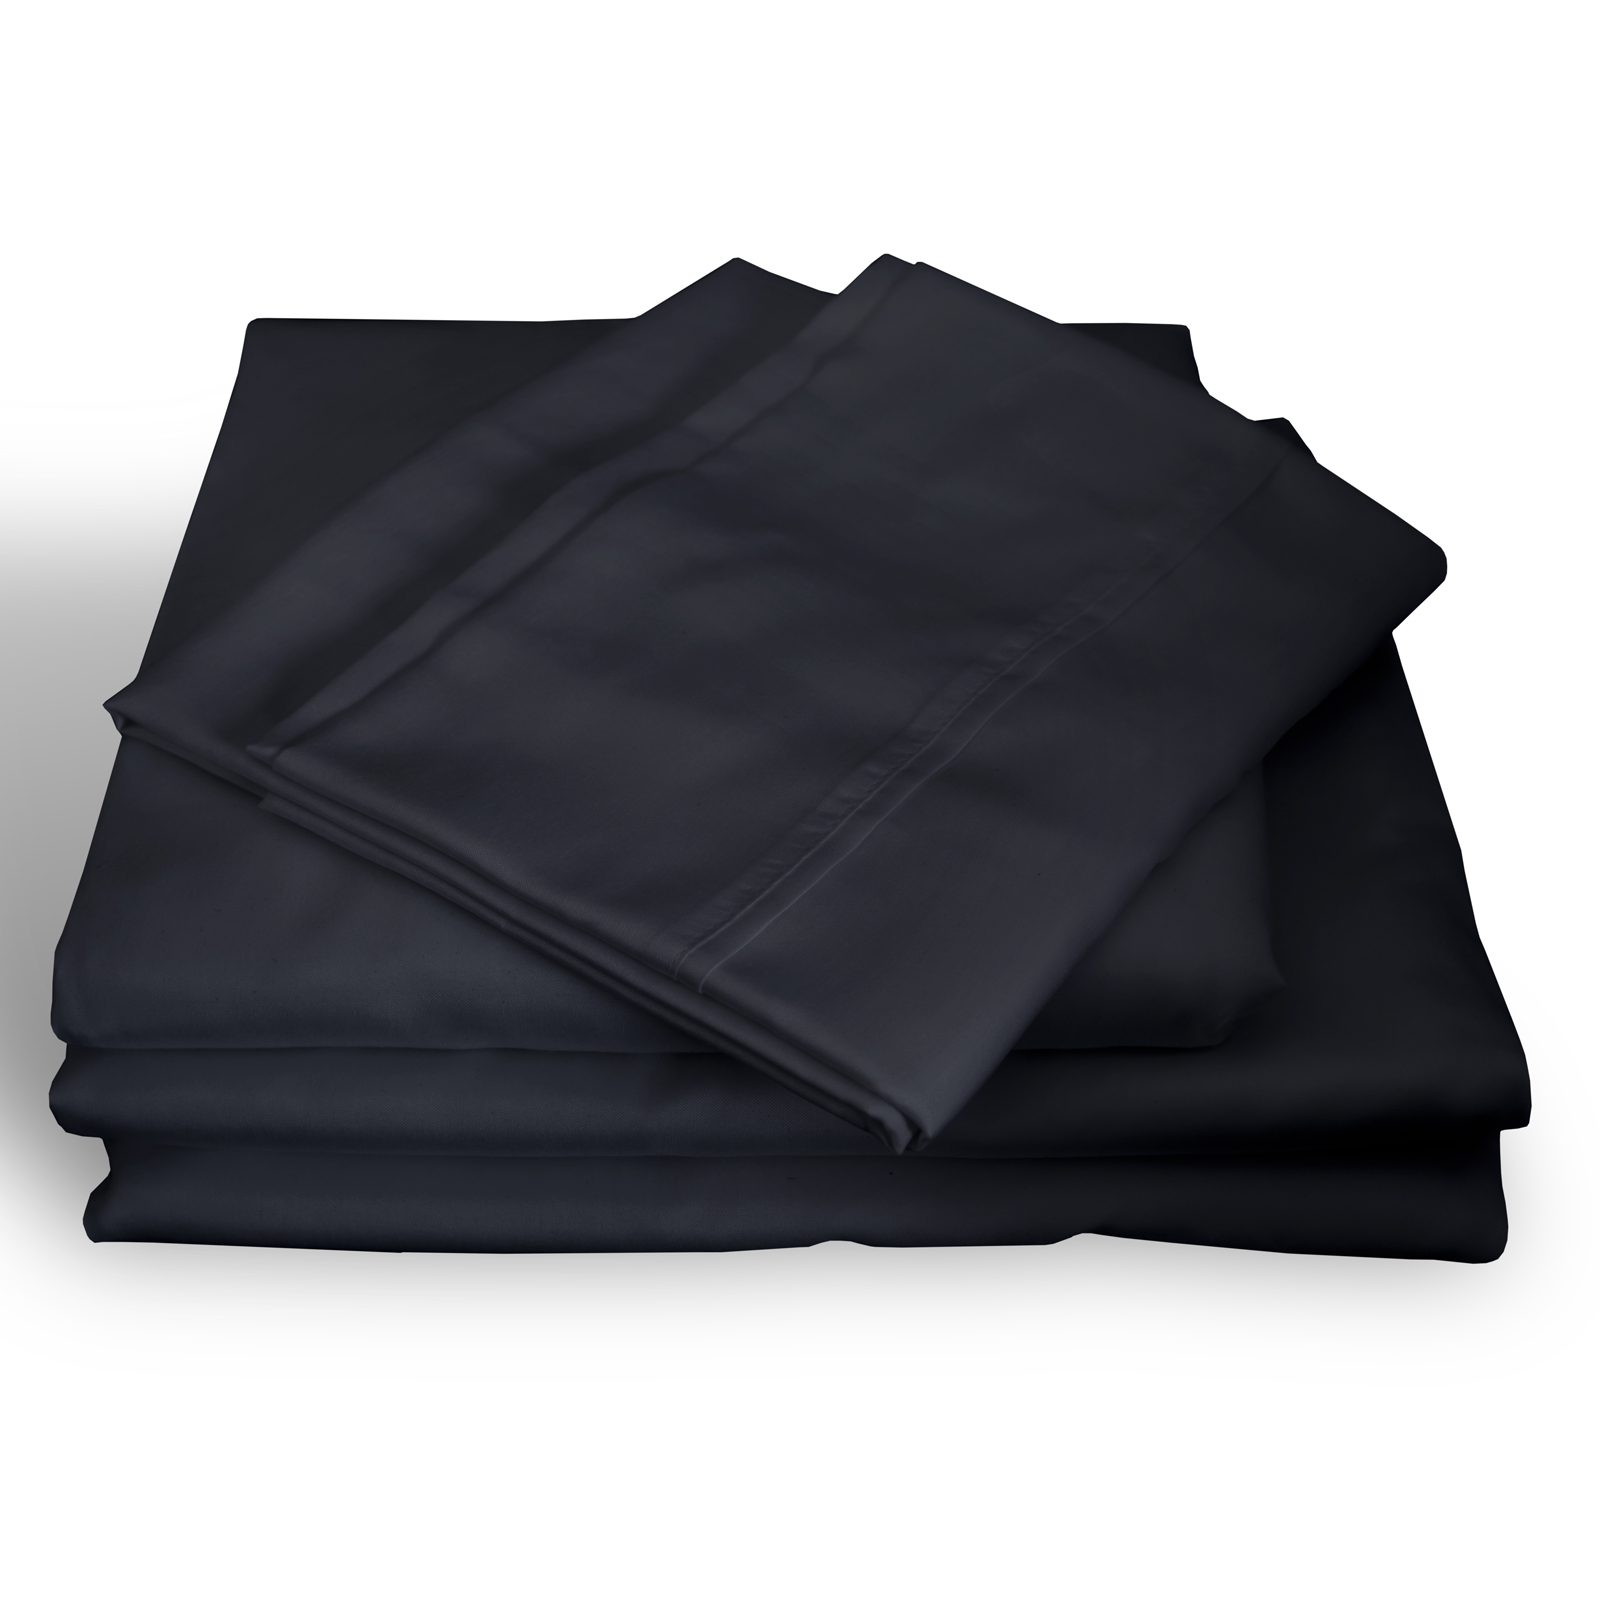 thumbnail 31 - Royal Comfort 1000TC Hotel Grade Bamboo Cotton Sheets Pillowcases Set Ultrasoft